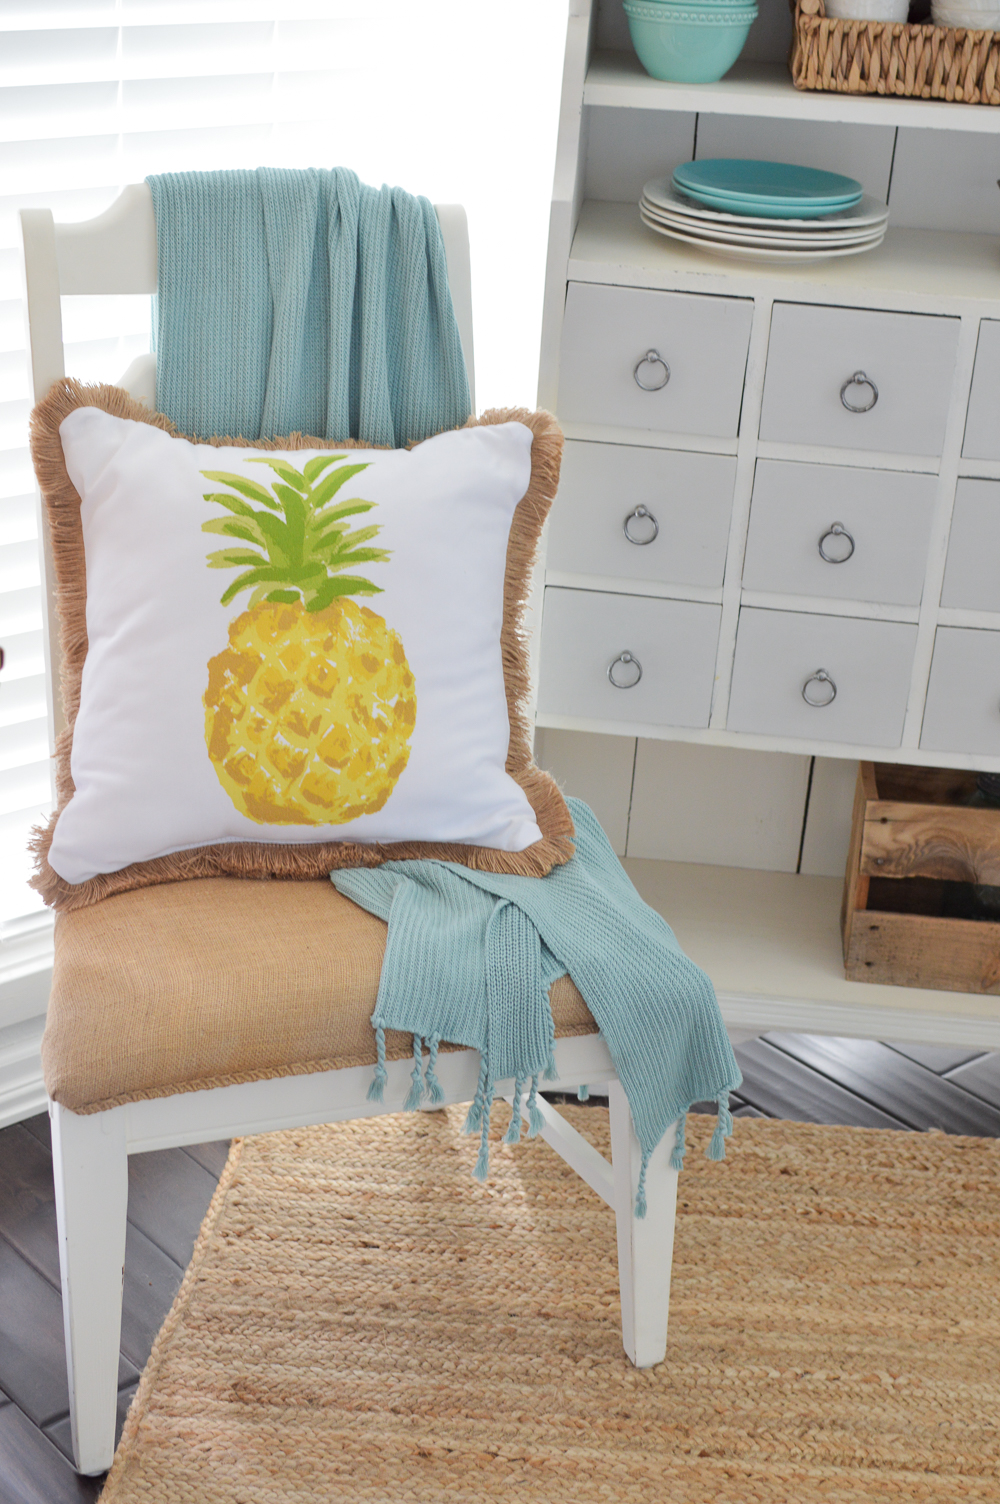 DIY coffee sack painted chair makeover, Pineapple pillow with fringe and aqua throw.